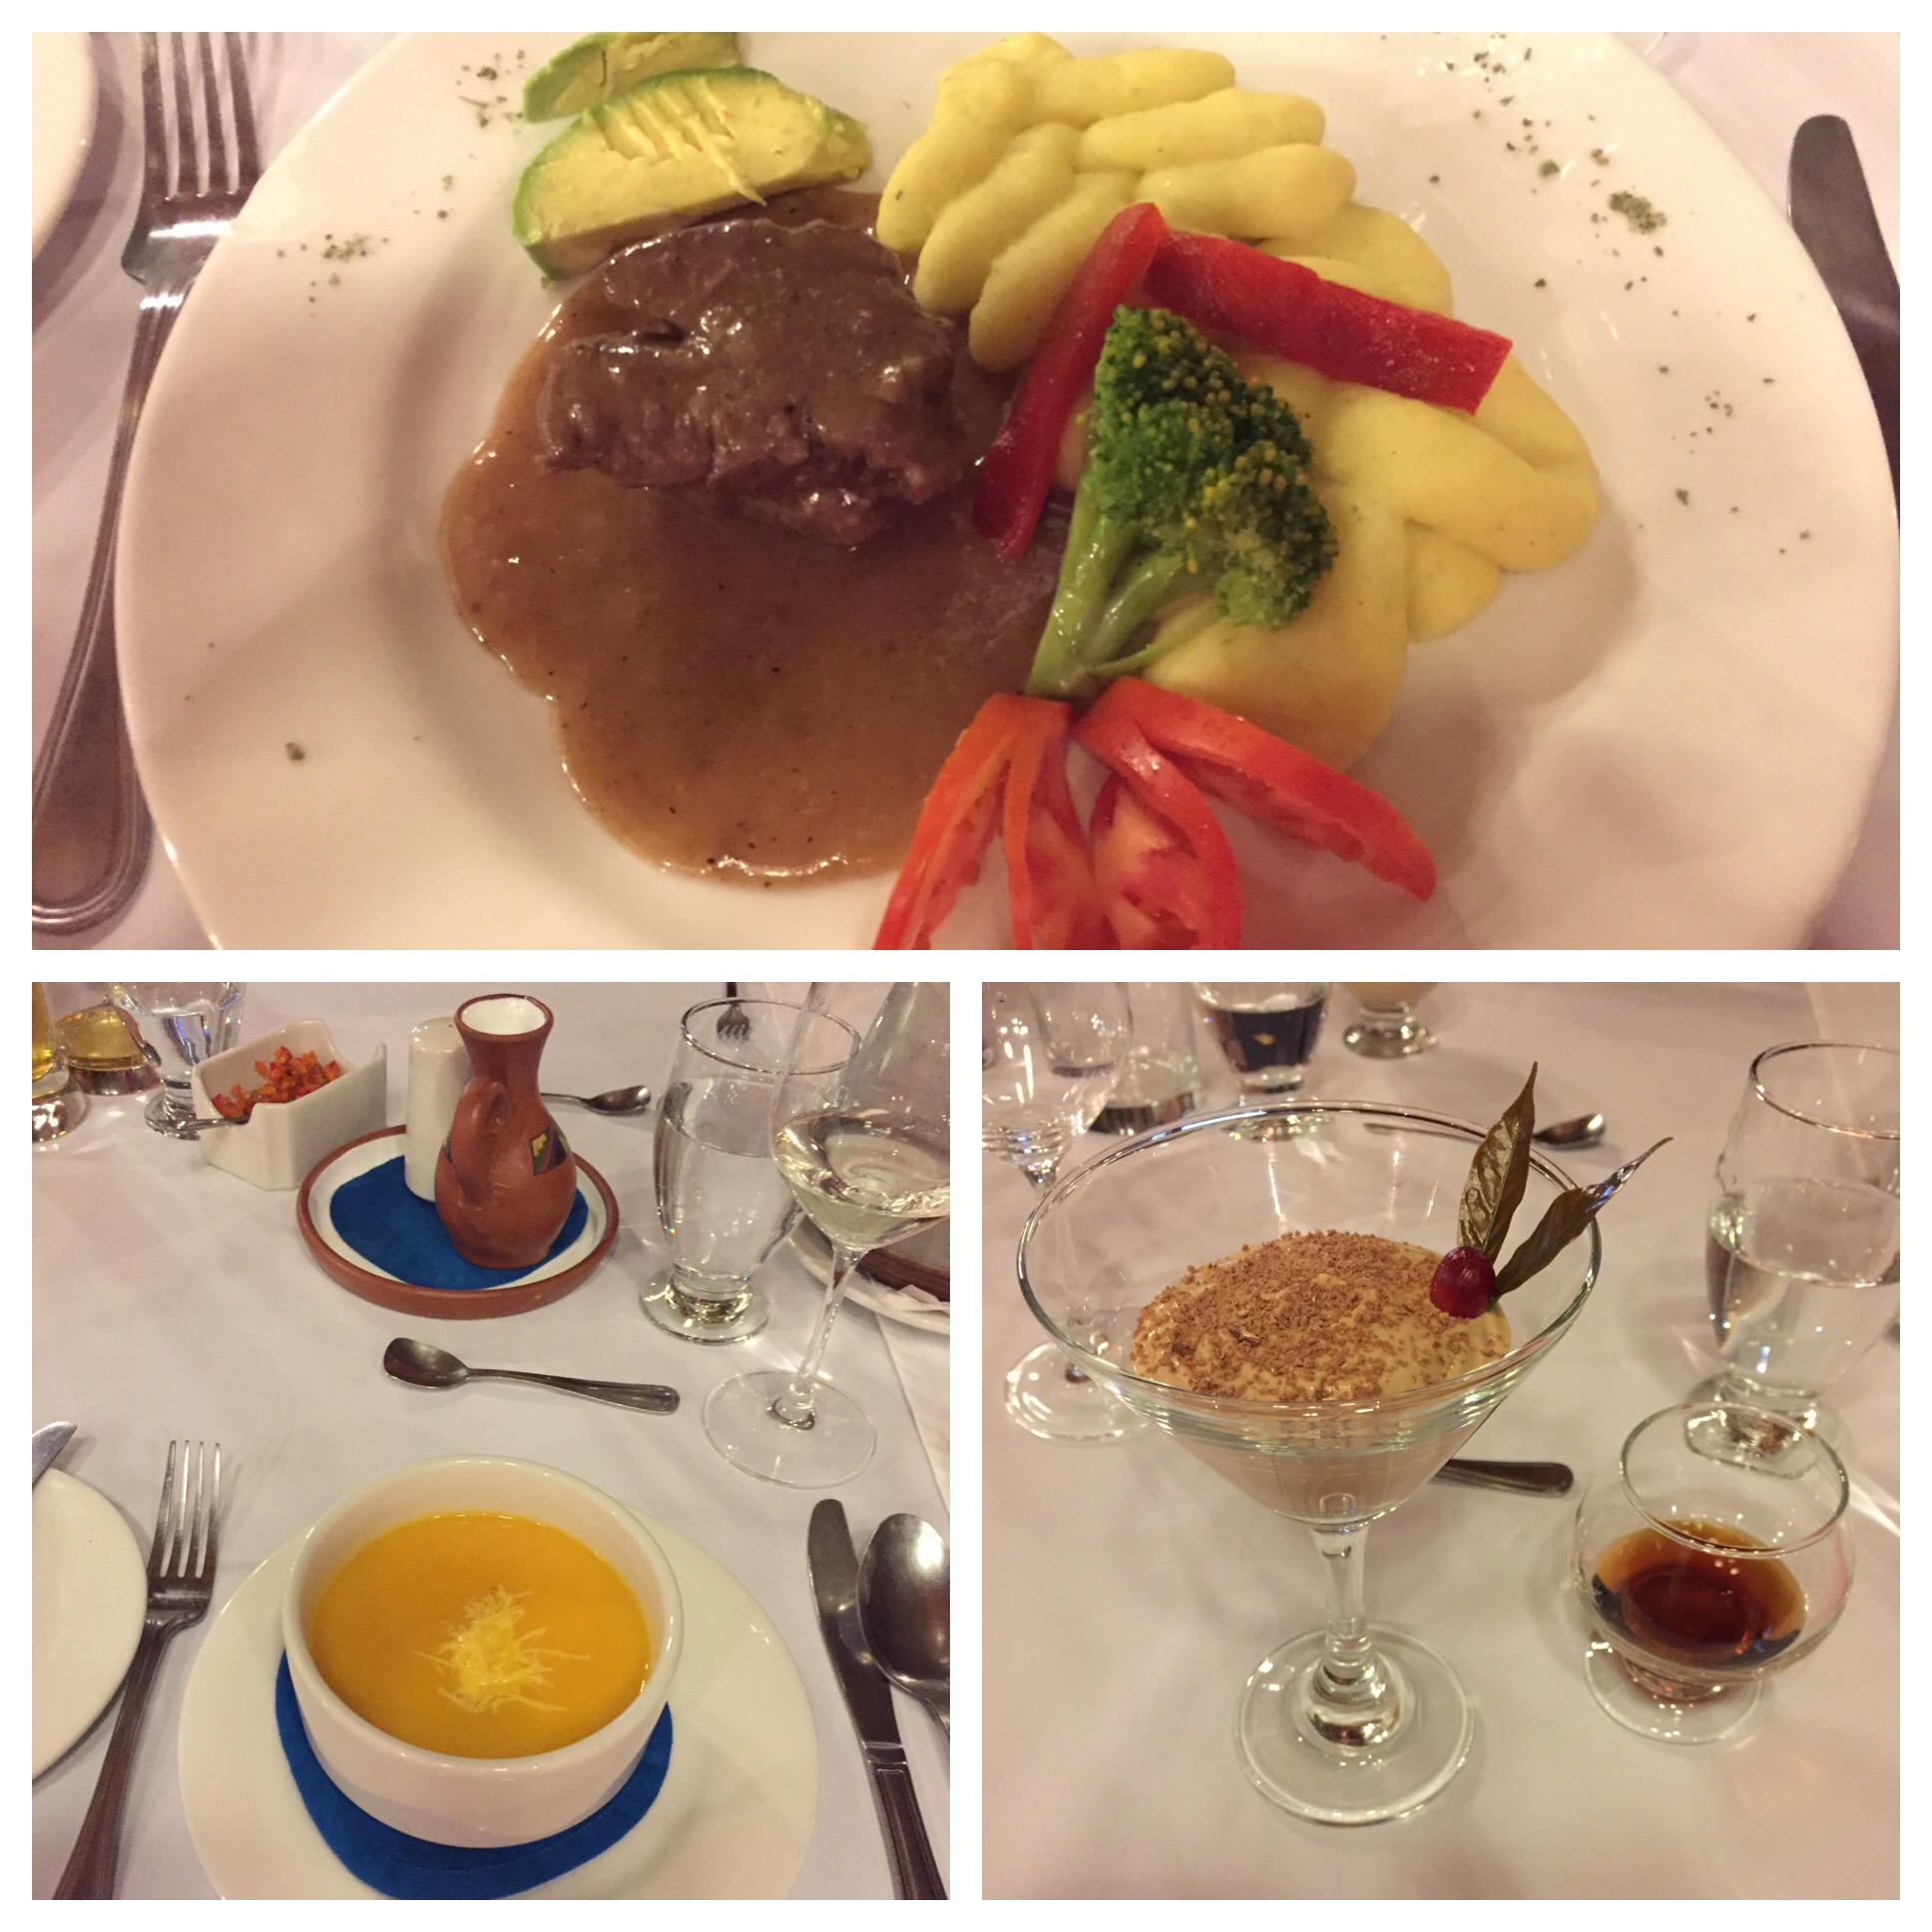 Carrot soup, Beef tenderloin with mashed potatoes and fresh avocado. Coffee mousse for dessert with coffee liqueur.